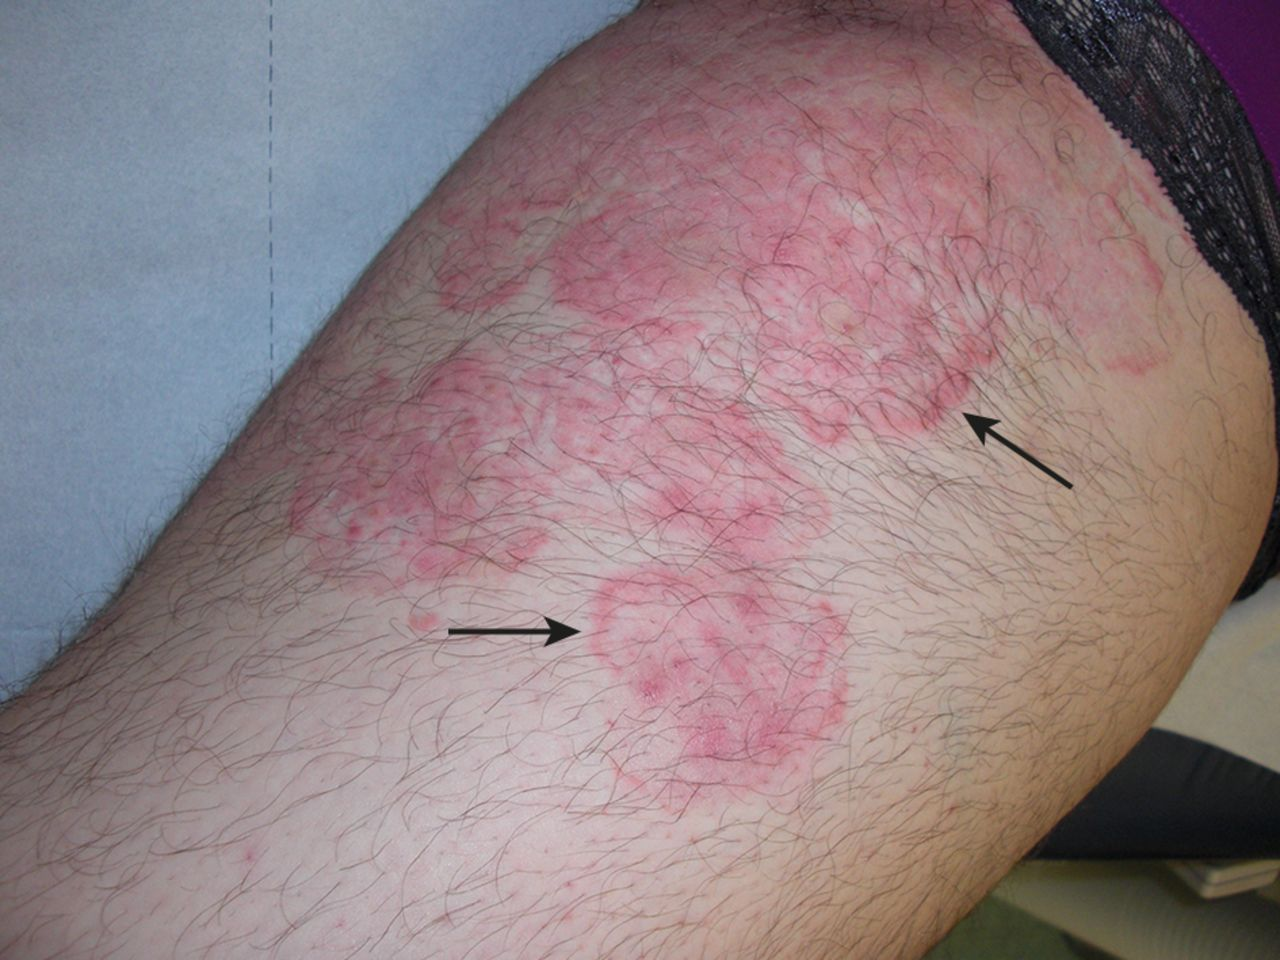 Atypical psoriasis   The BMJ